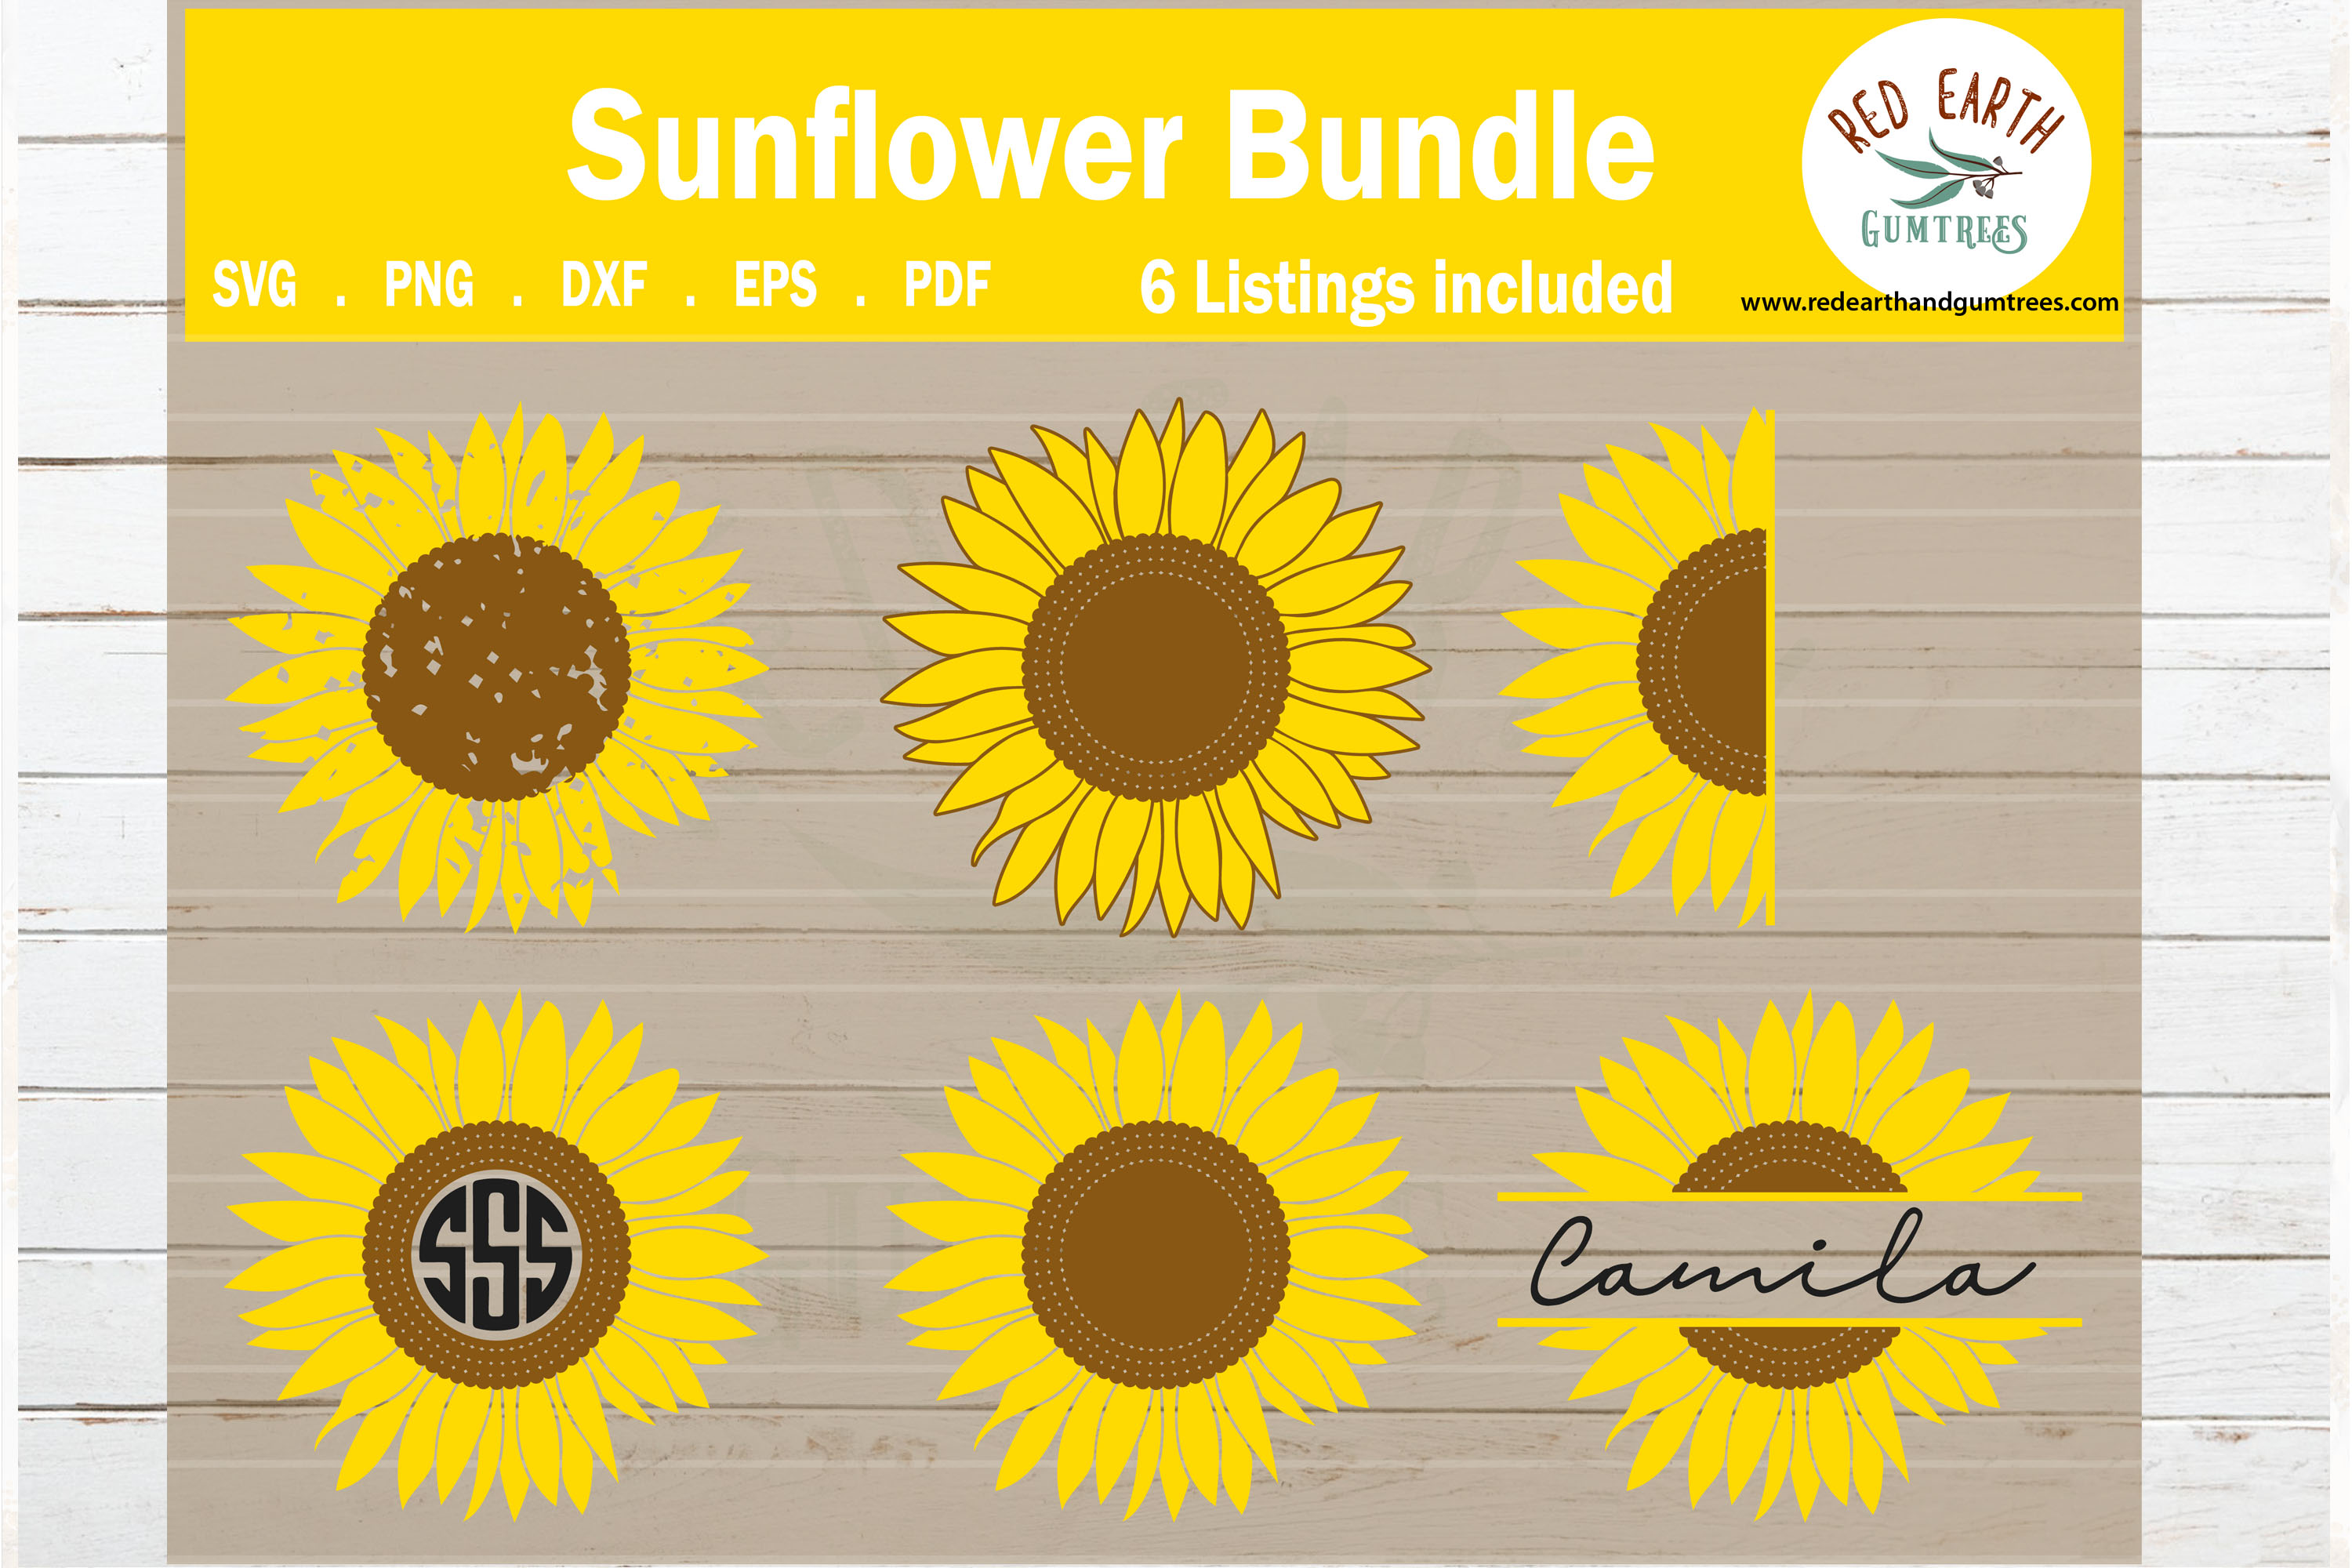 Sunflower Bundle Distressed Flower Graphic By Redearth And Gumtrees Creative Fabrica